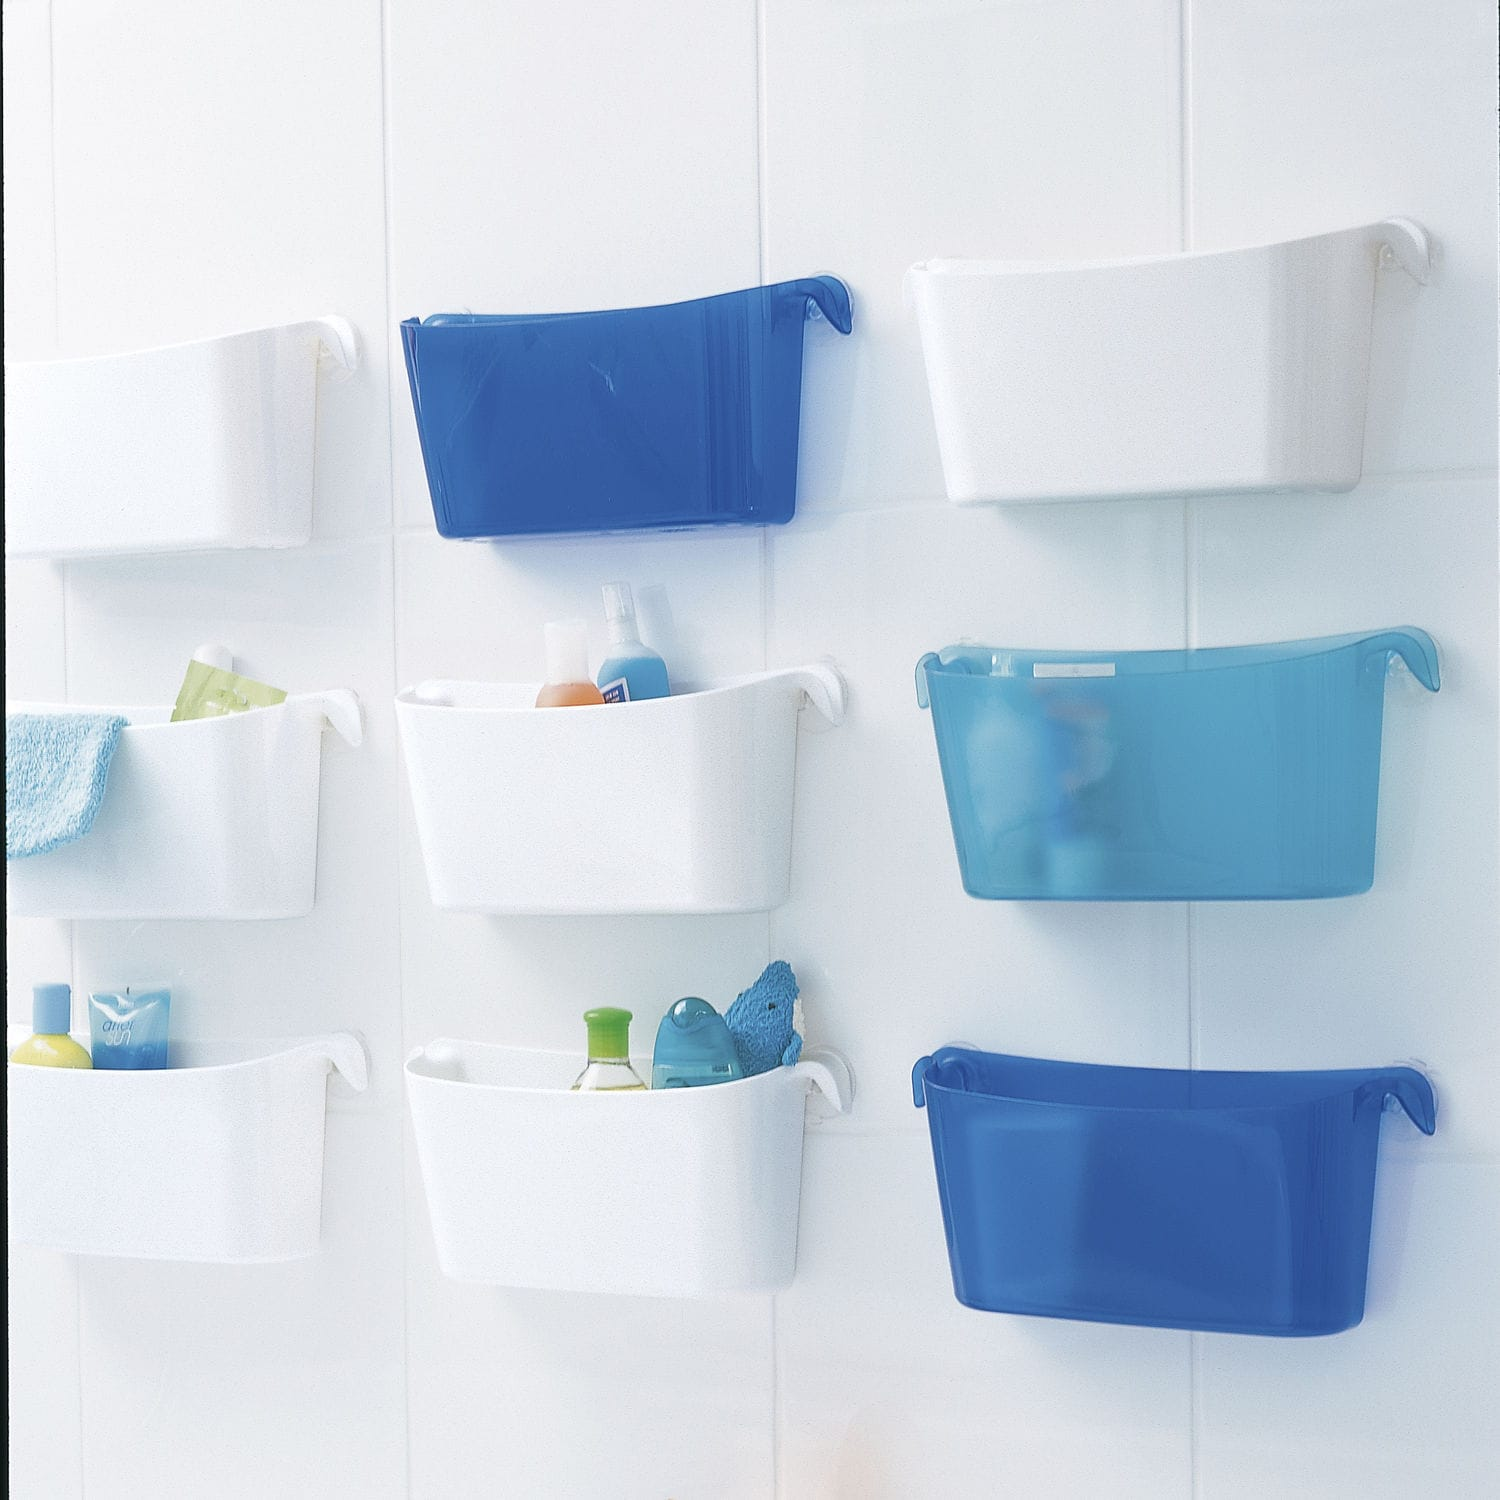 Shower basket - BOKS - Koziol